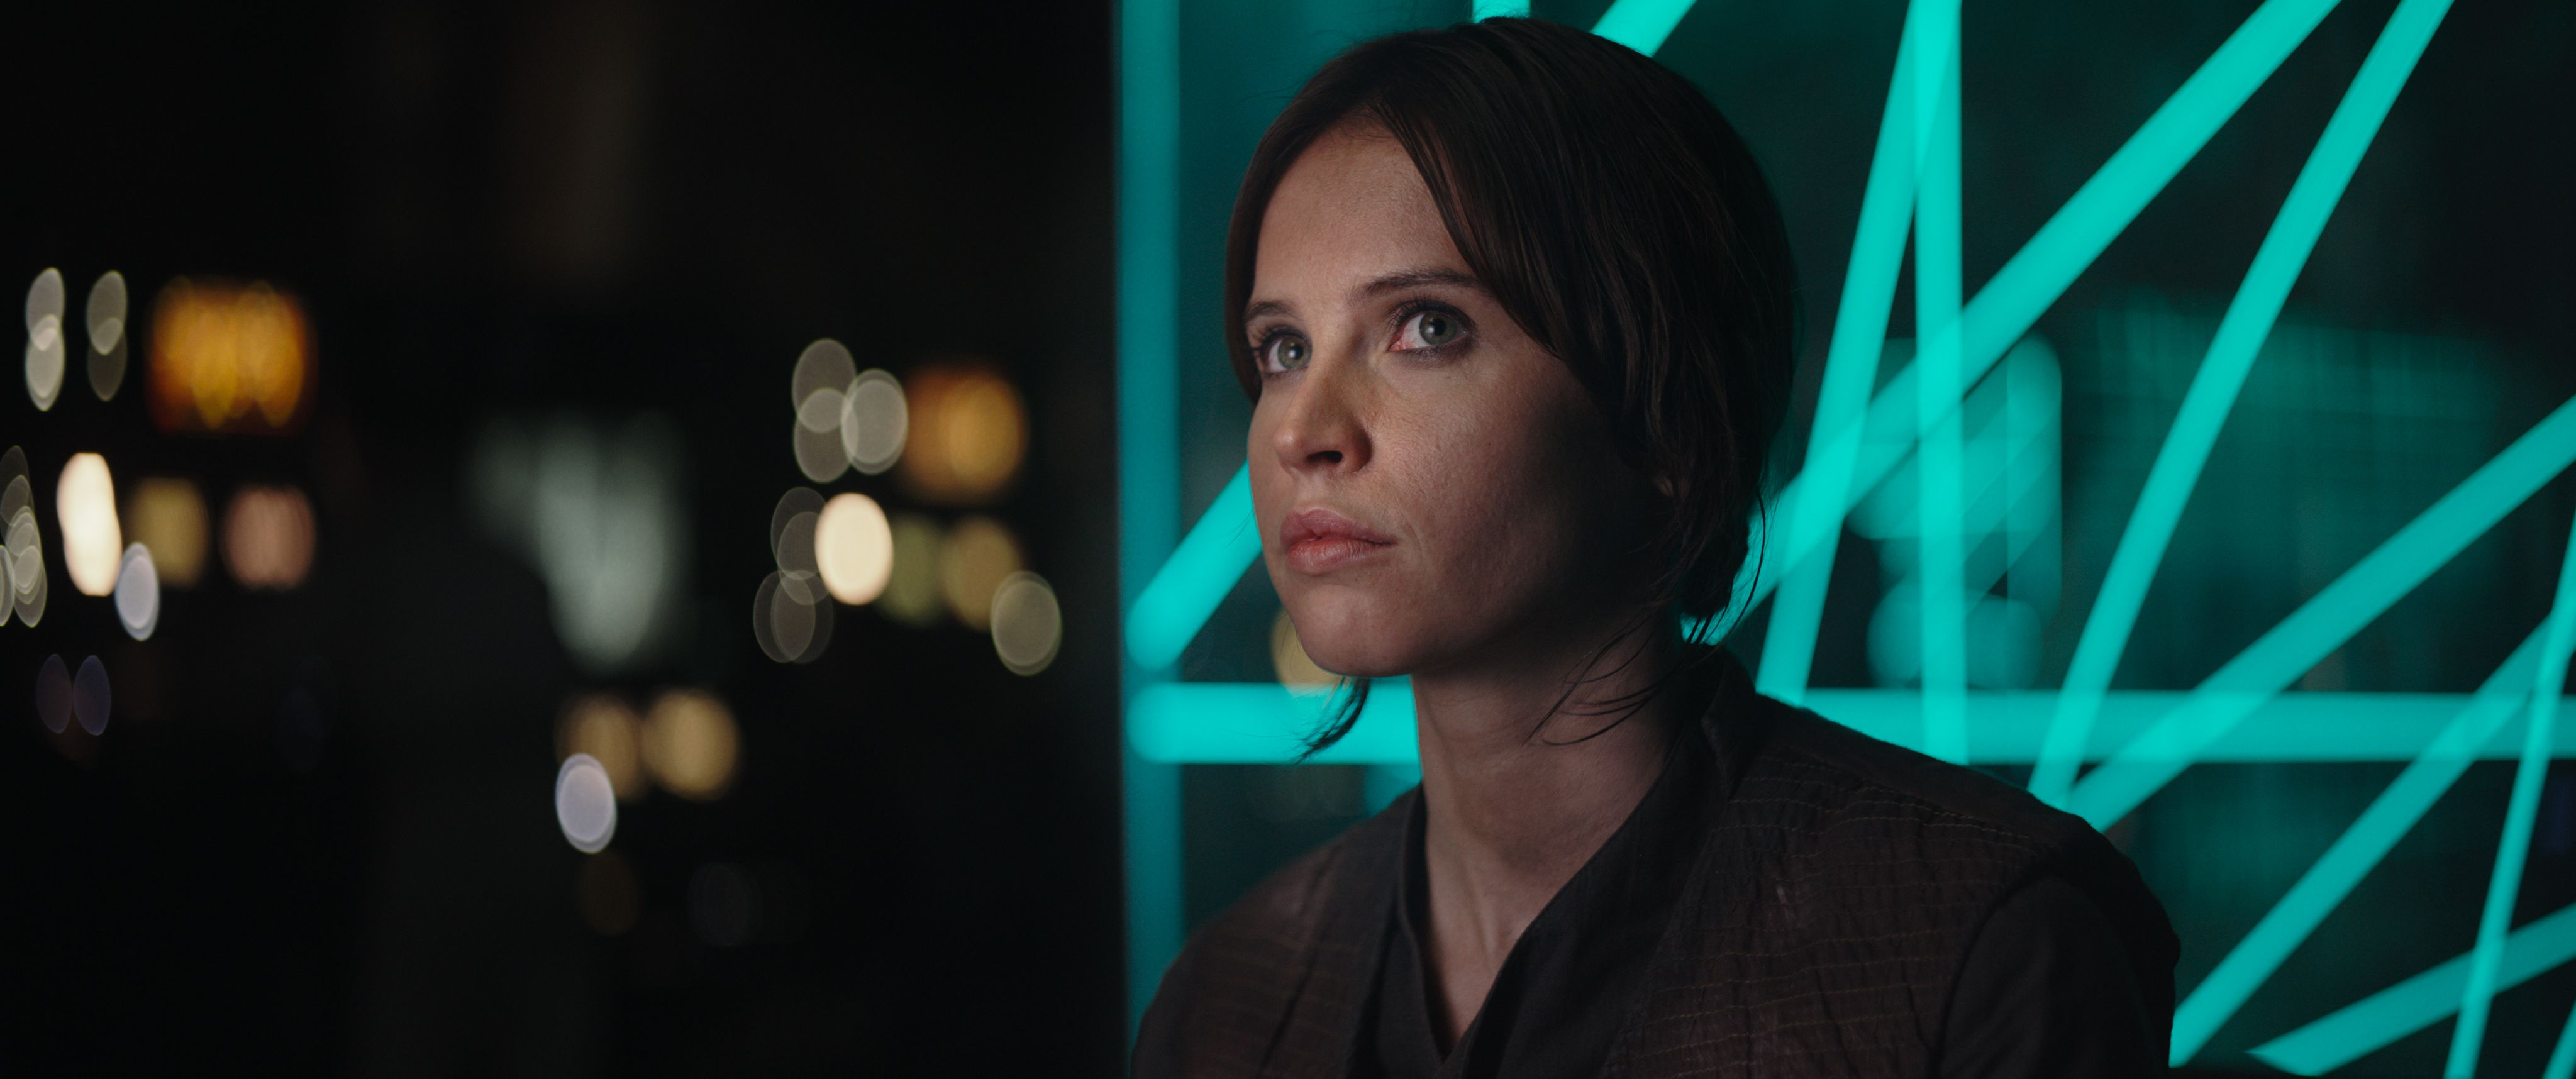 Seven reasons to be excited for Rogue One: A Star Wars Story